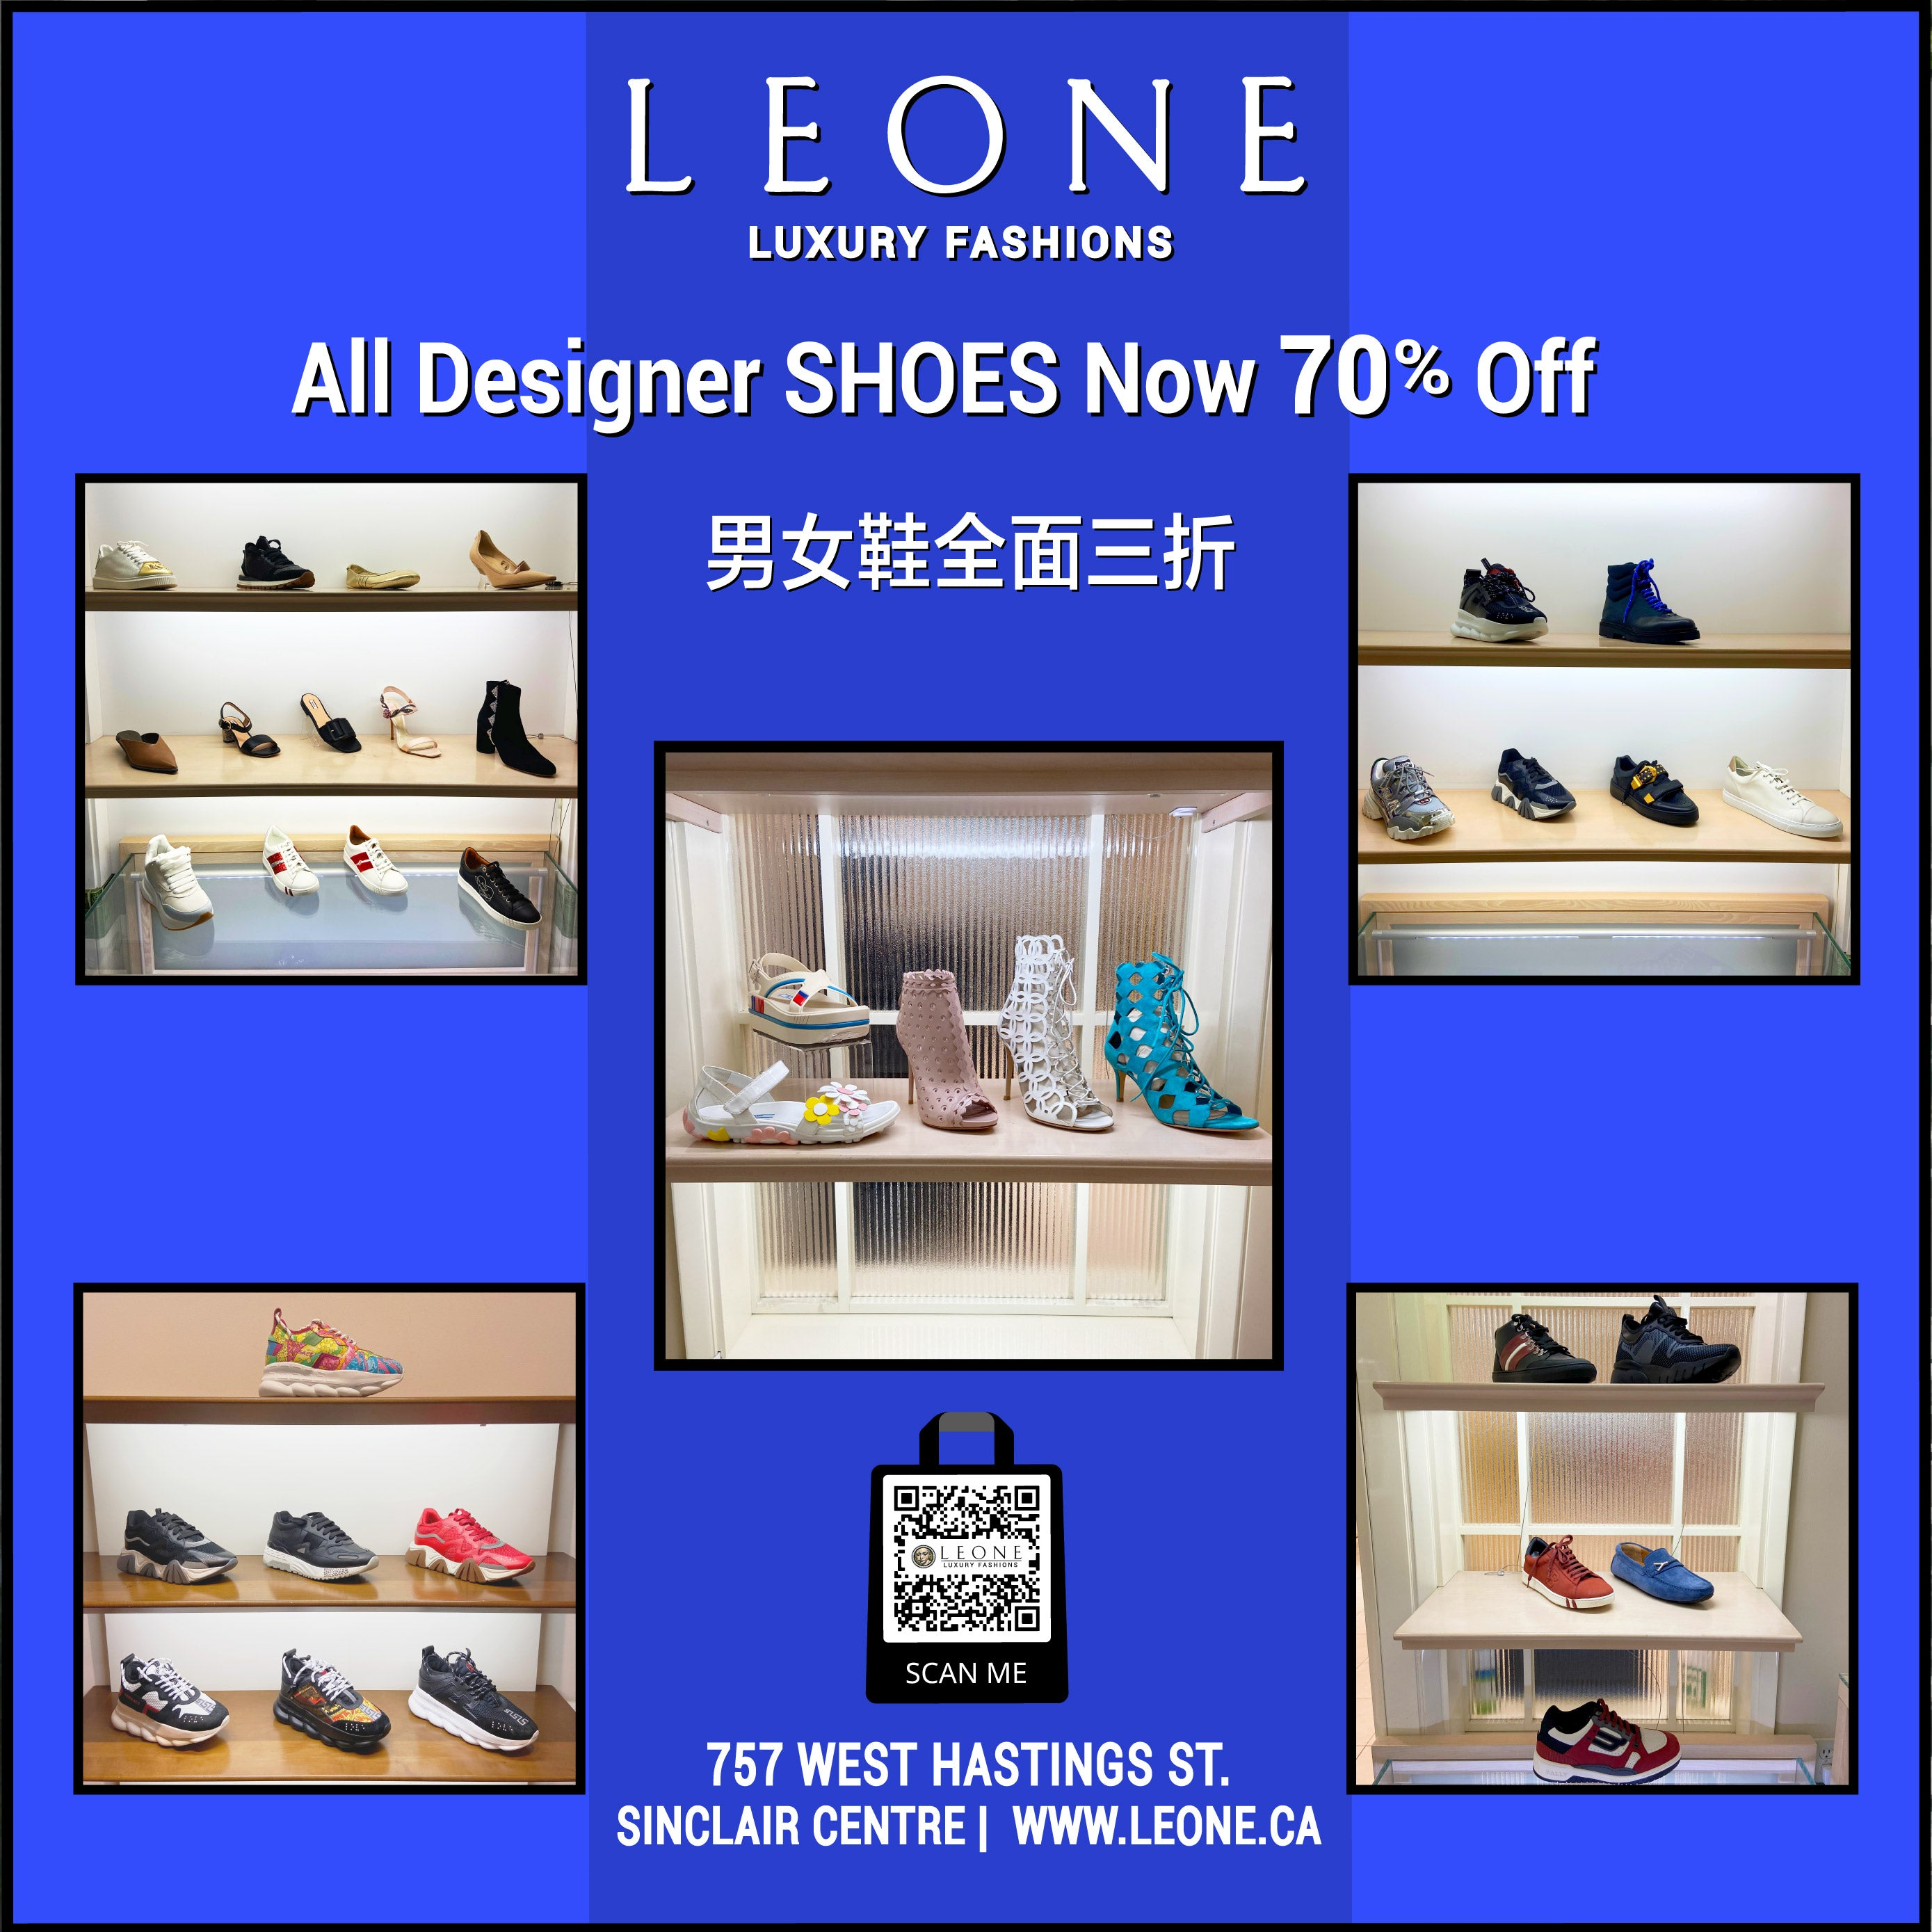 All Designer Shoes | 70% OFF